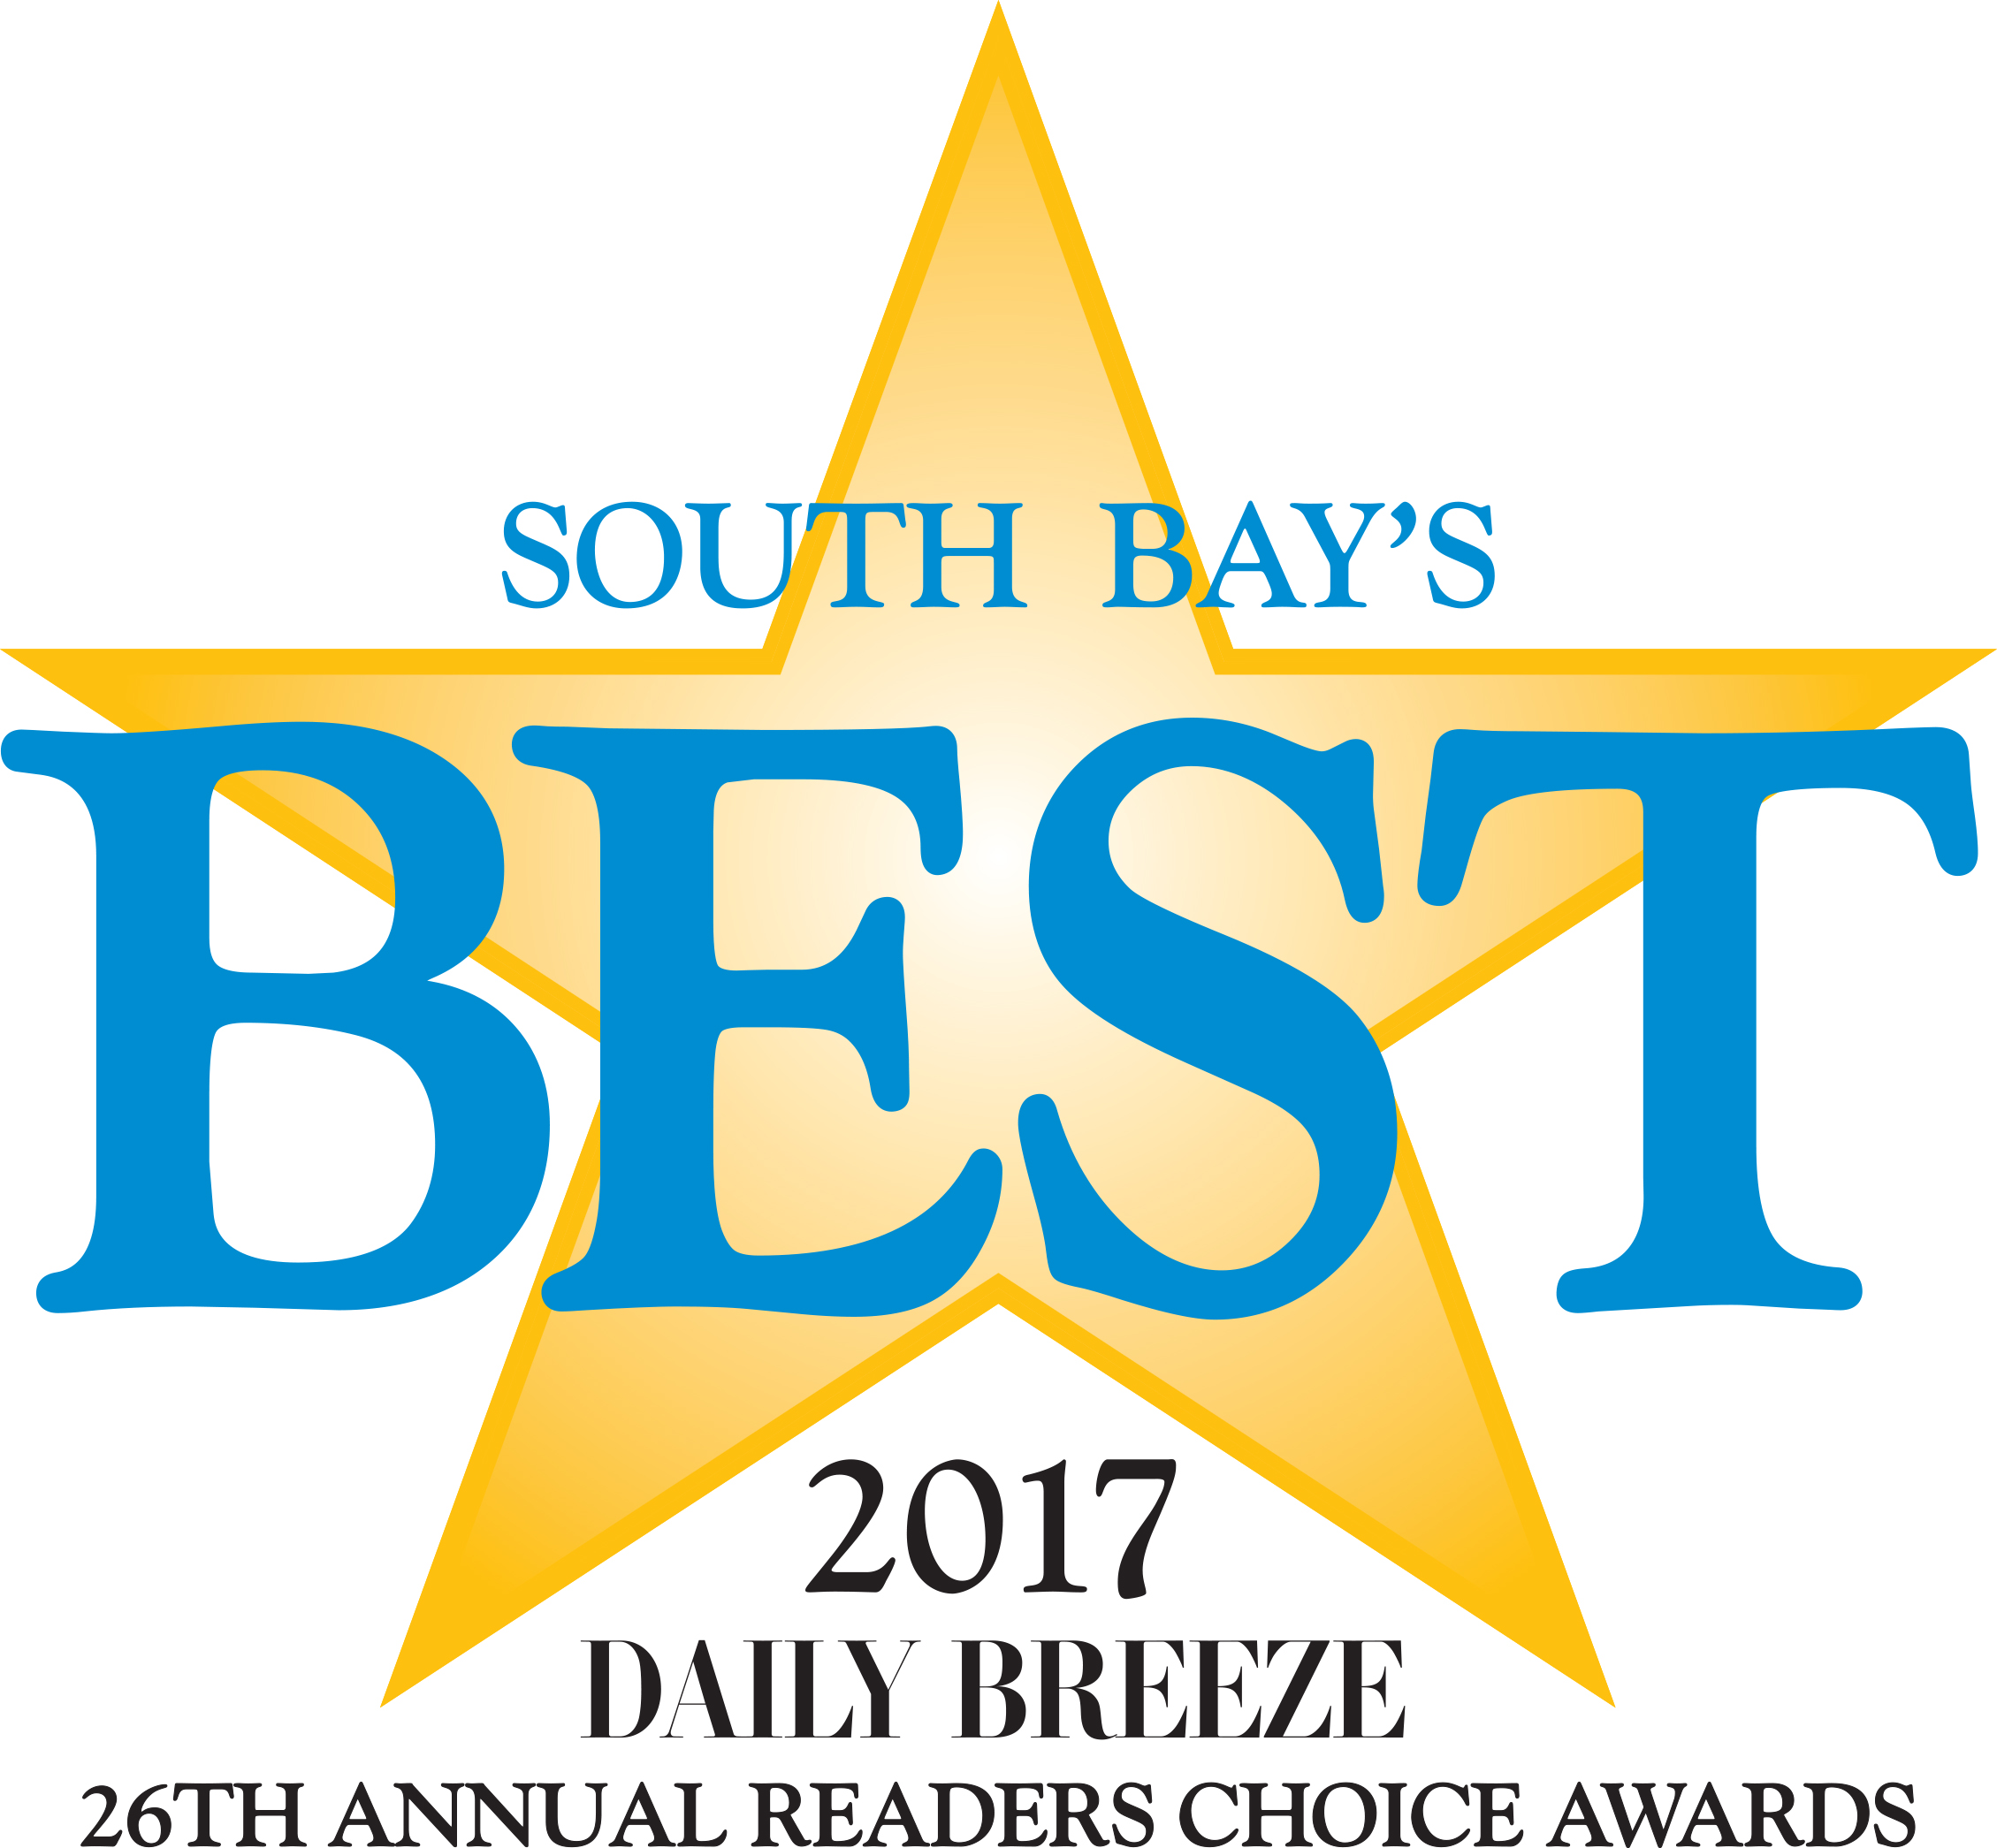 South Bay's BEST 2017